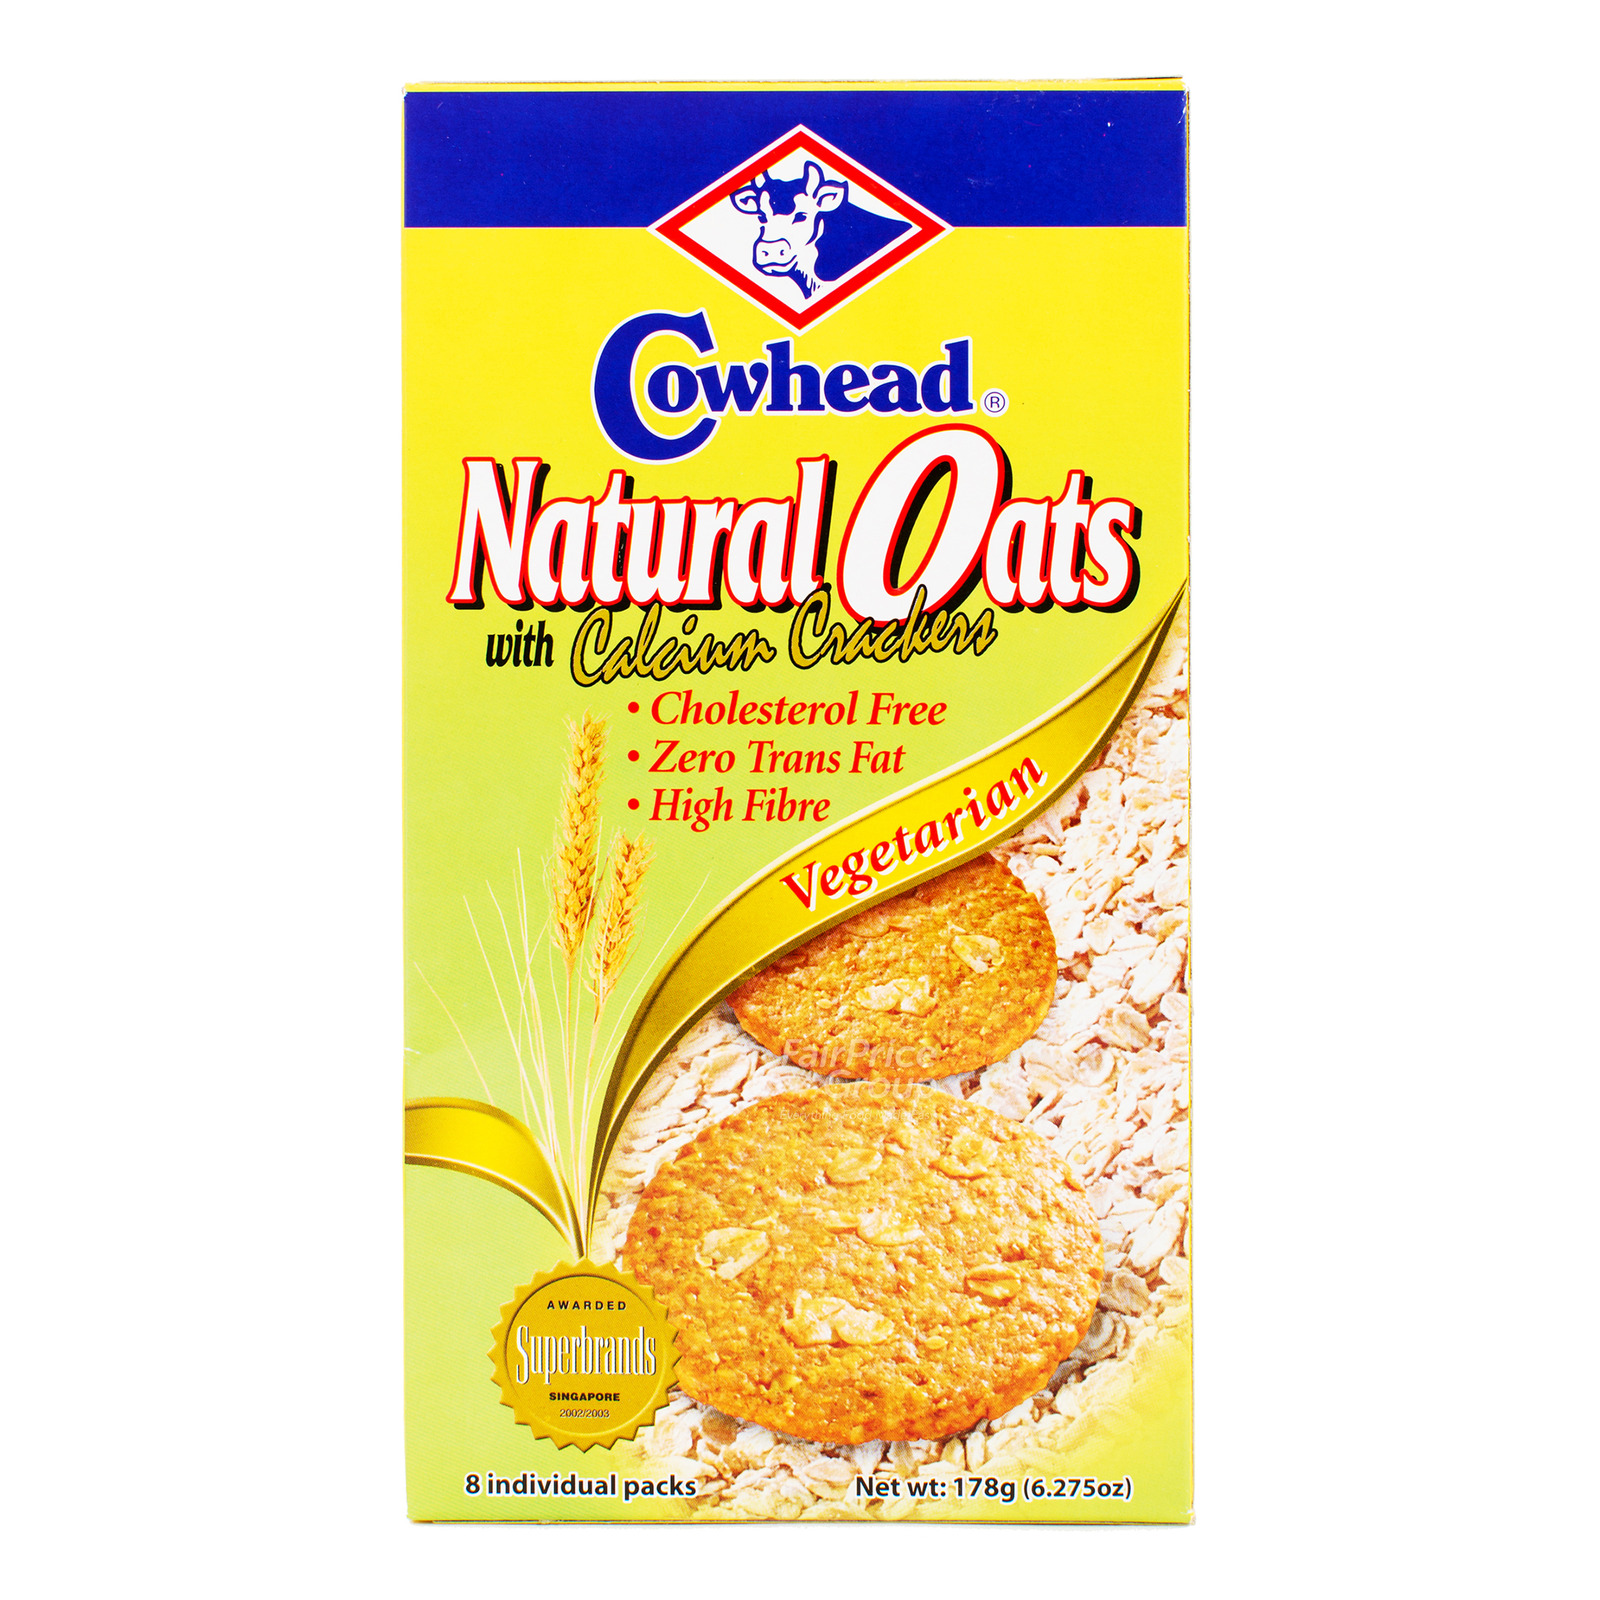 Cowhead Crackers - Natural Oats with Calcium